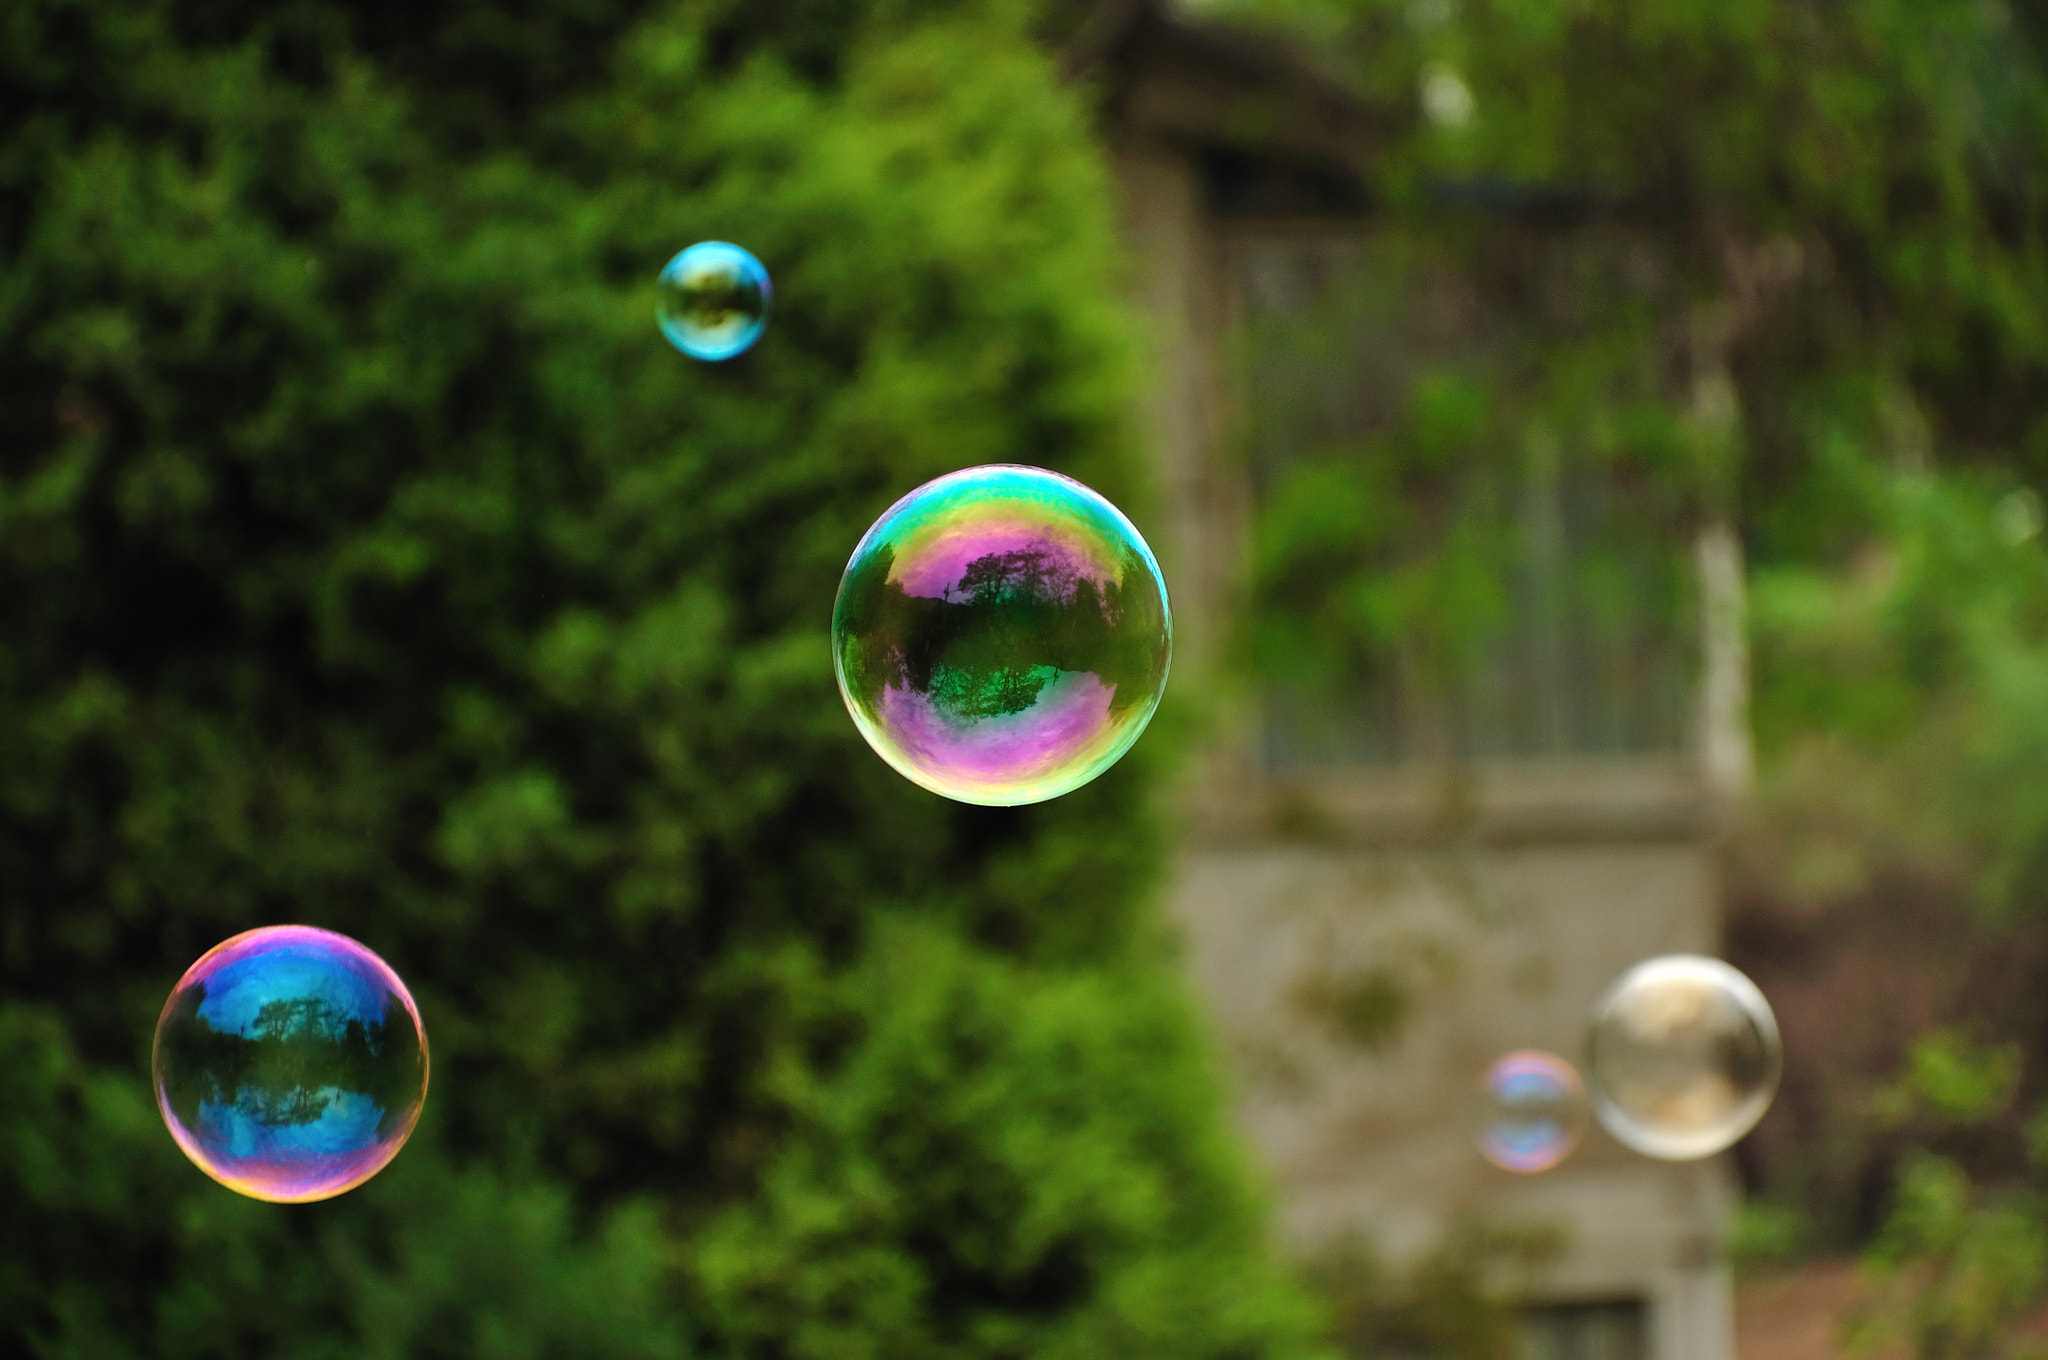 Photograph Bubble by Chang Steven on 500px